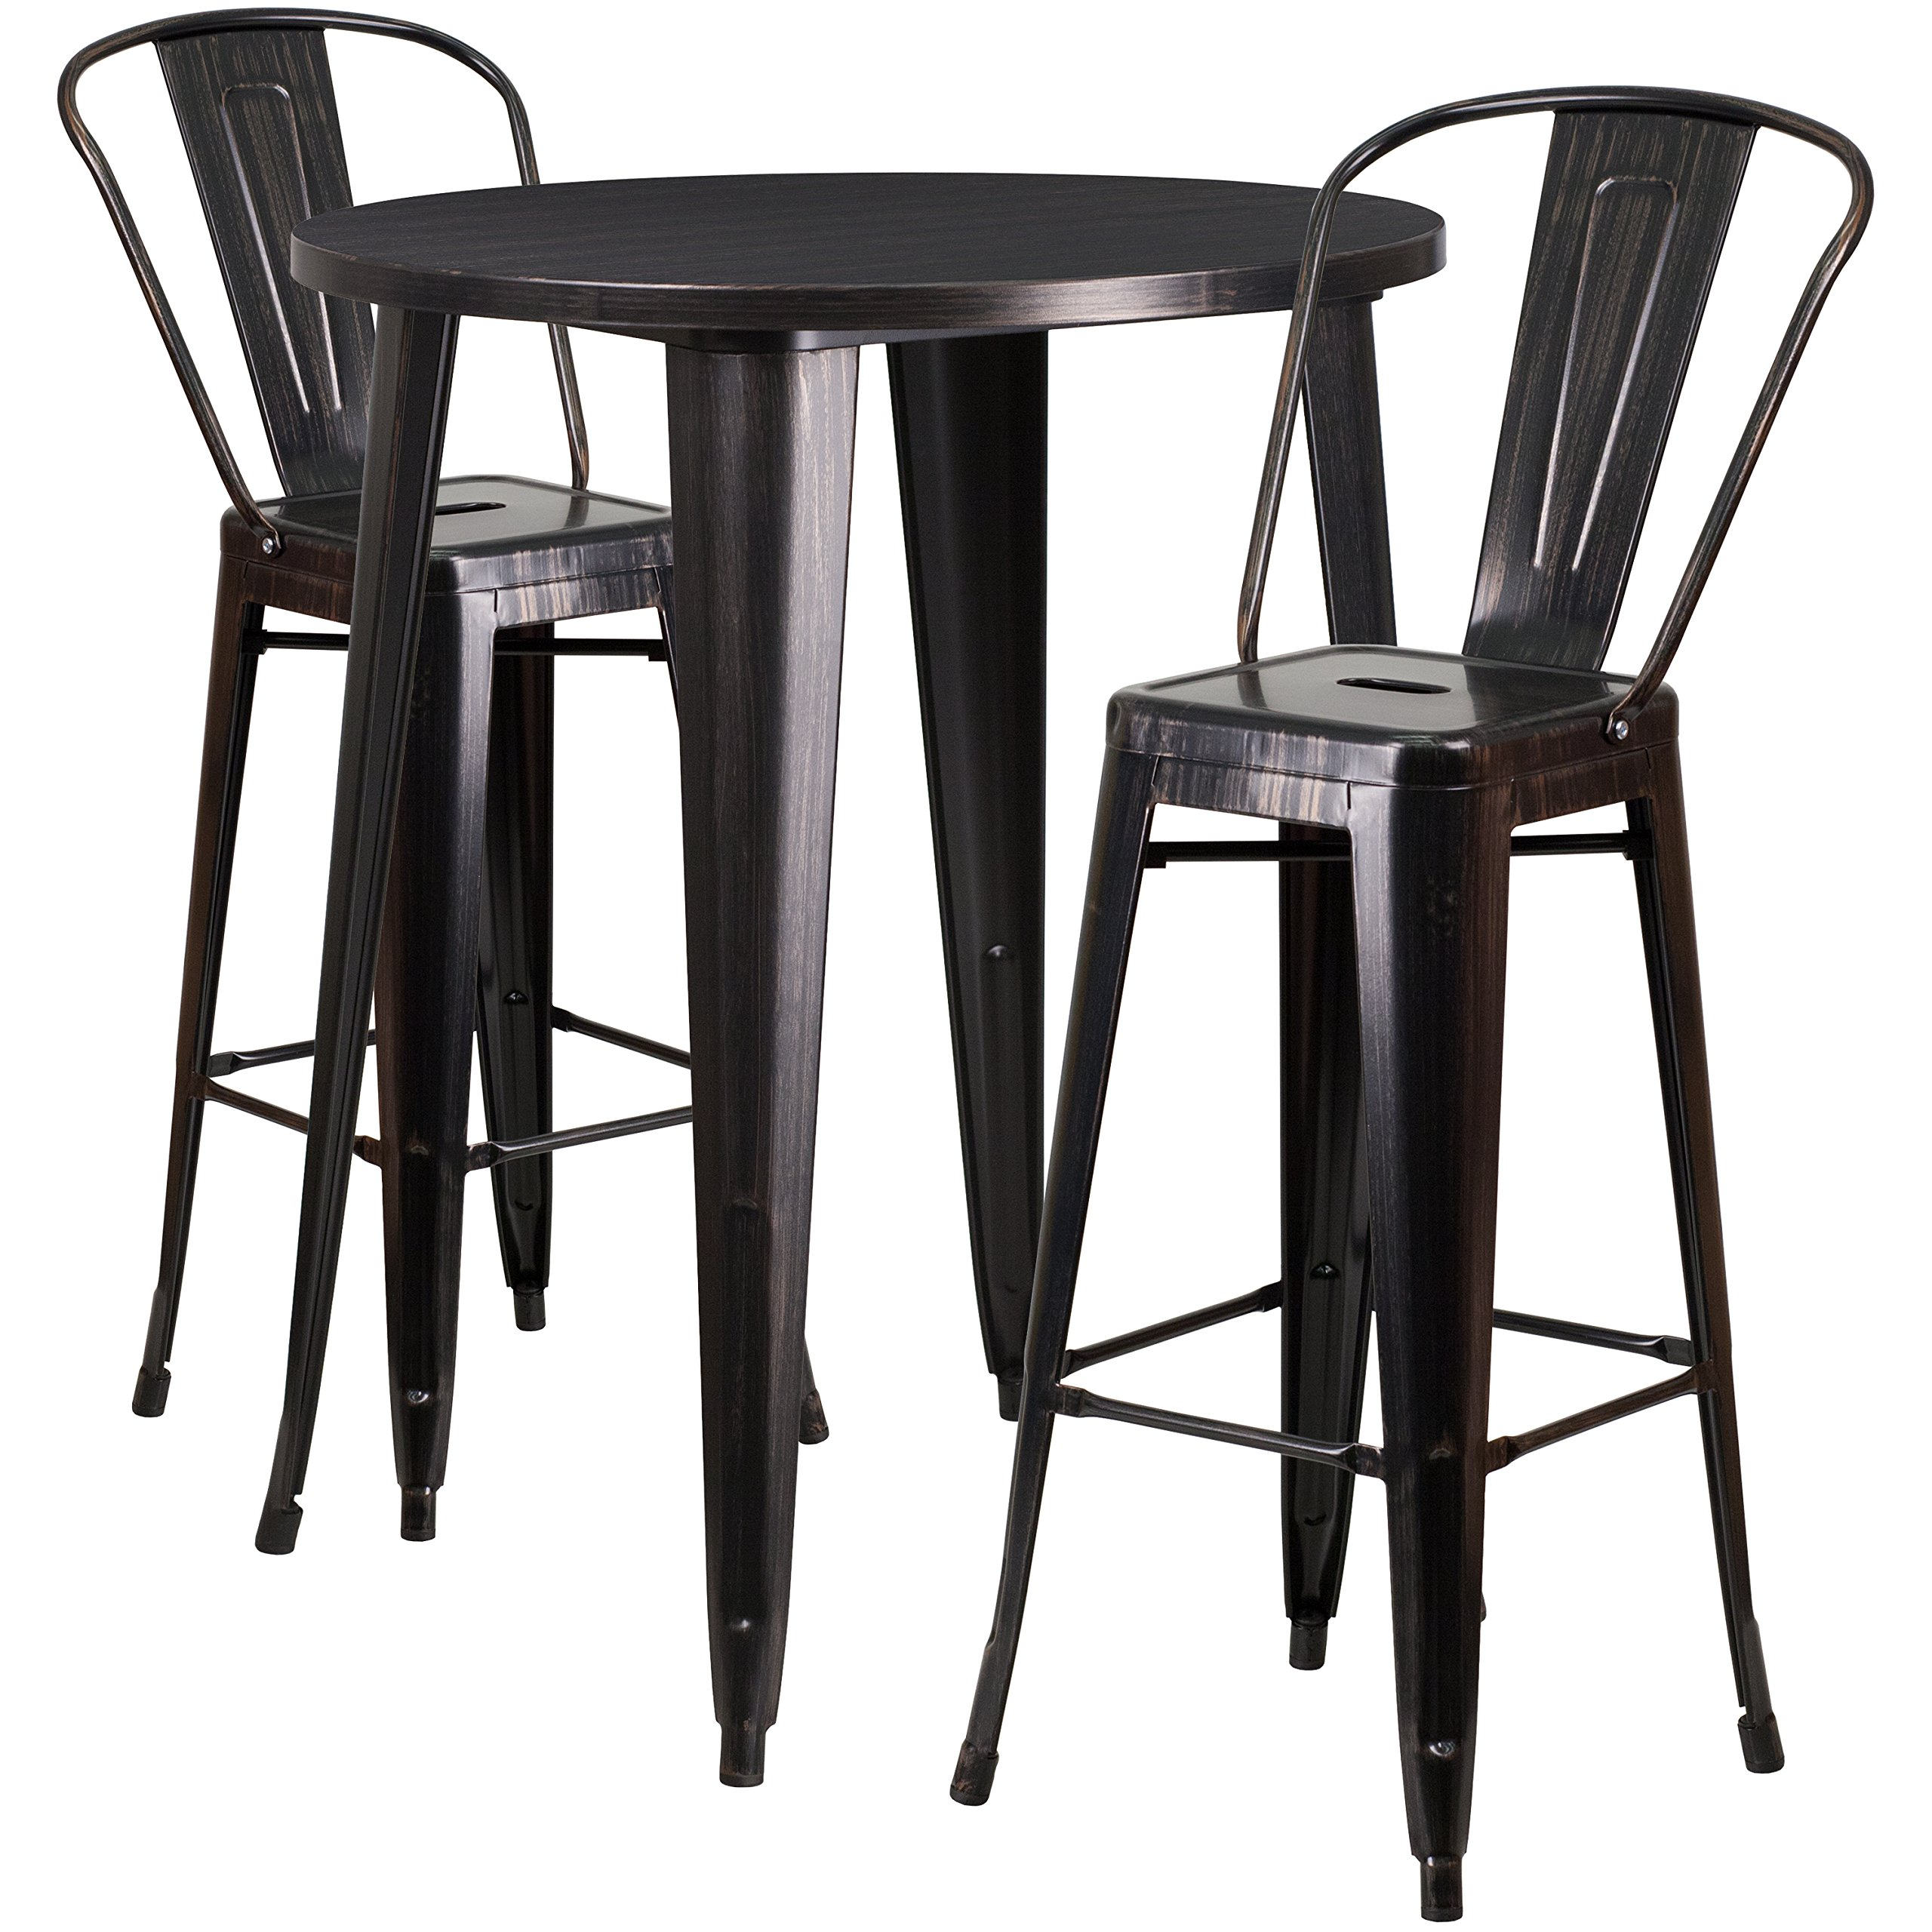 Flash Furniture 30'' Round Black-Antique Gold Metal Indoor-Outdoor Bar Table Set with 2 Cafe Stools